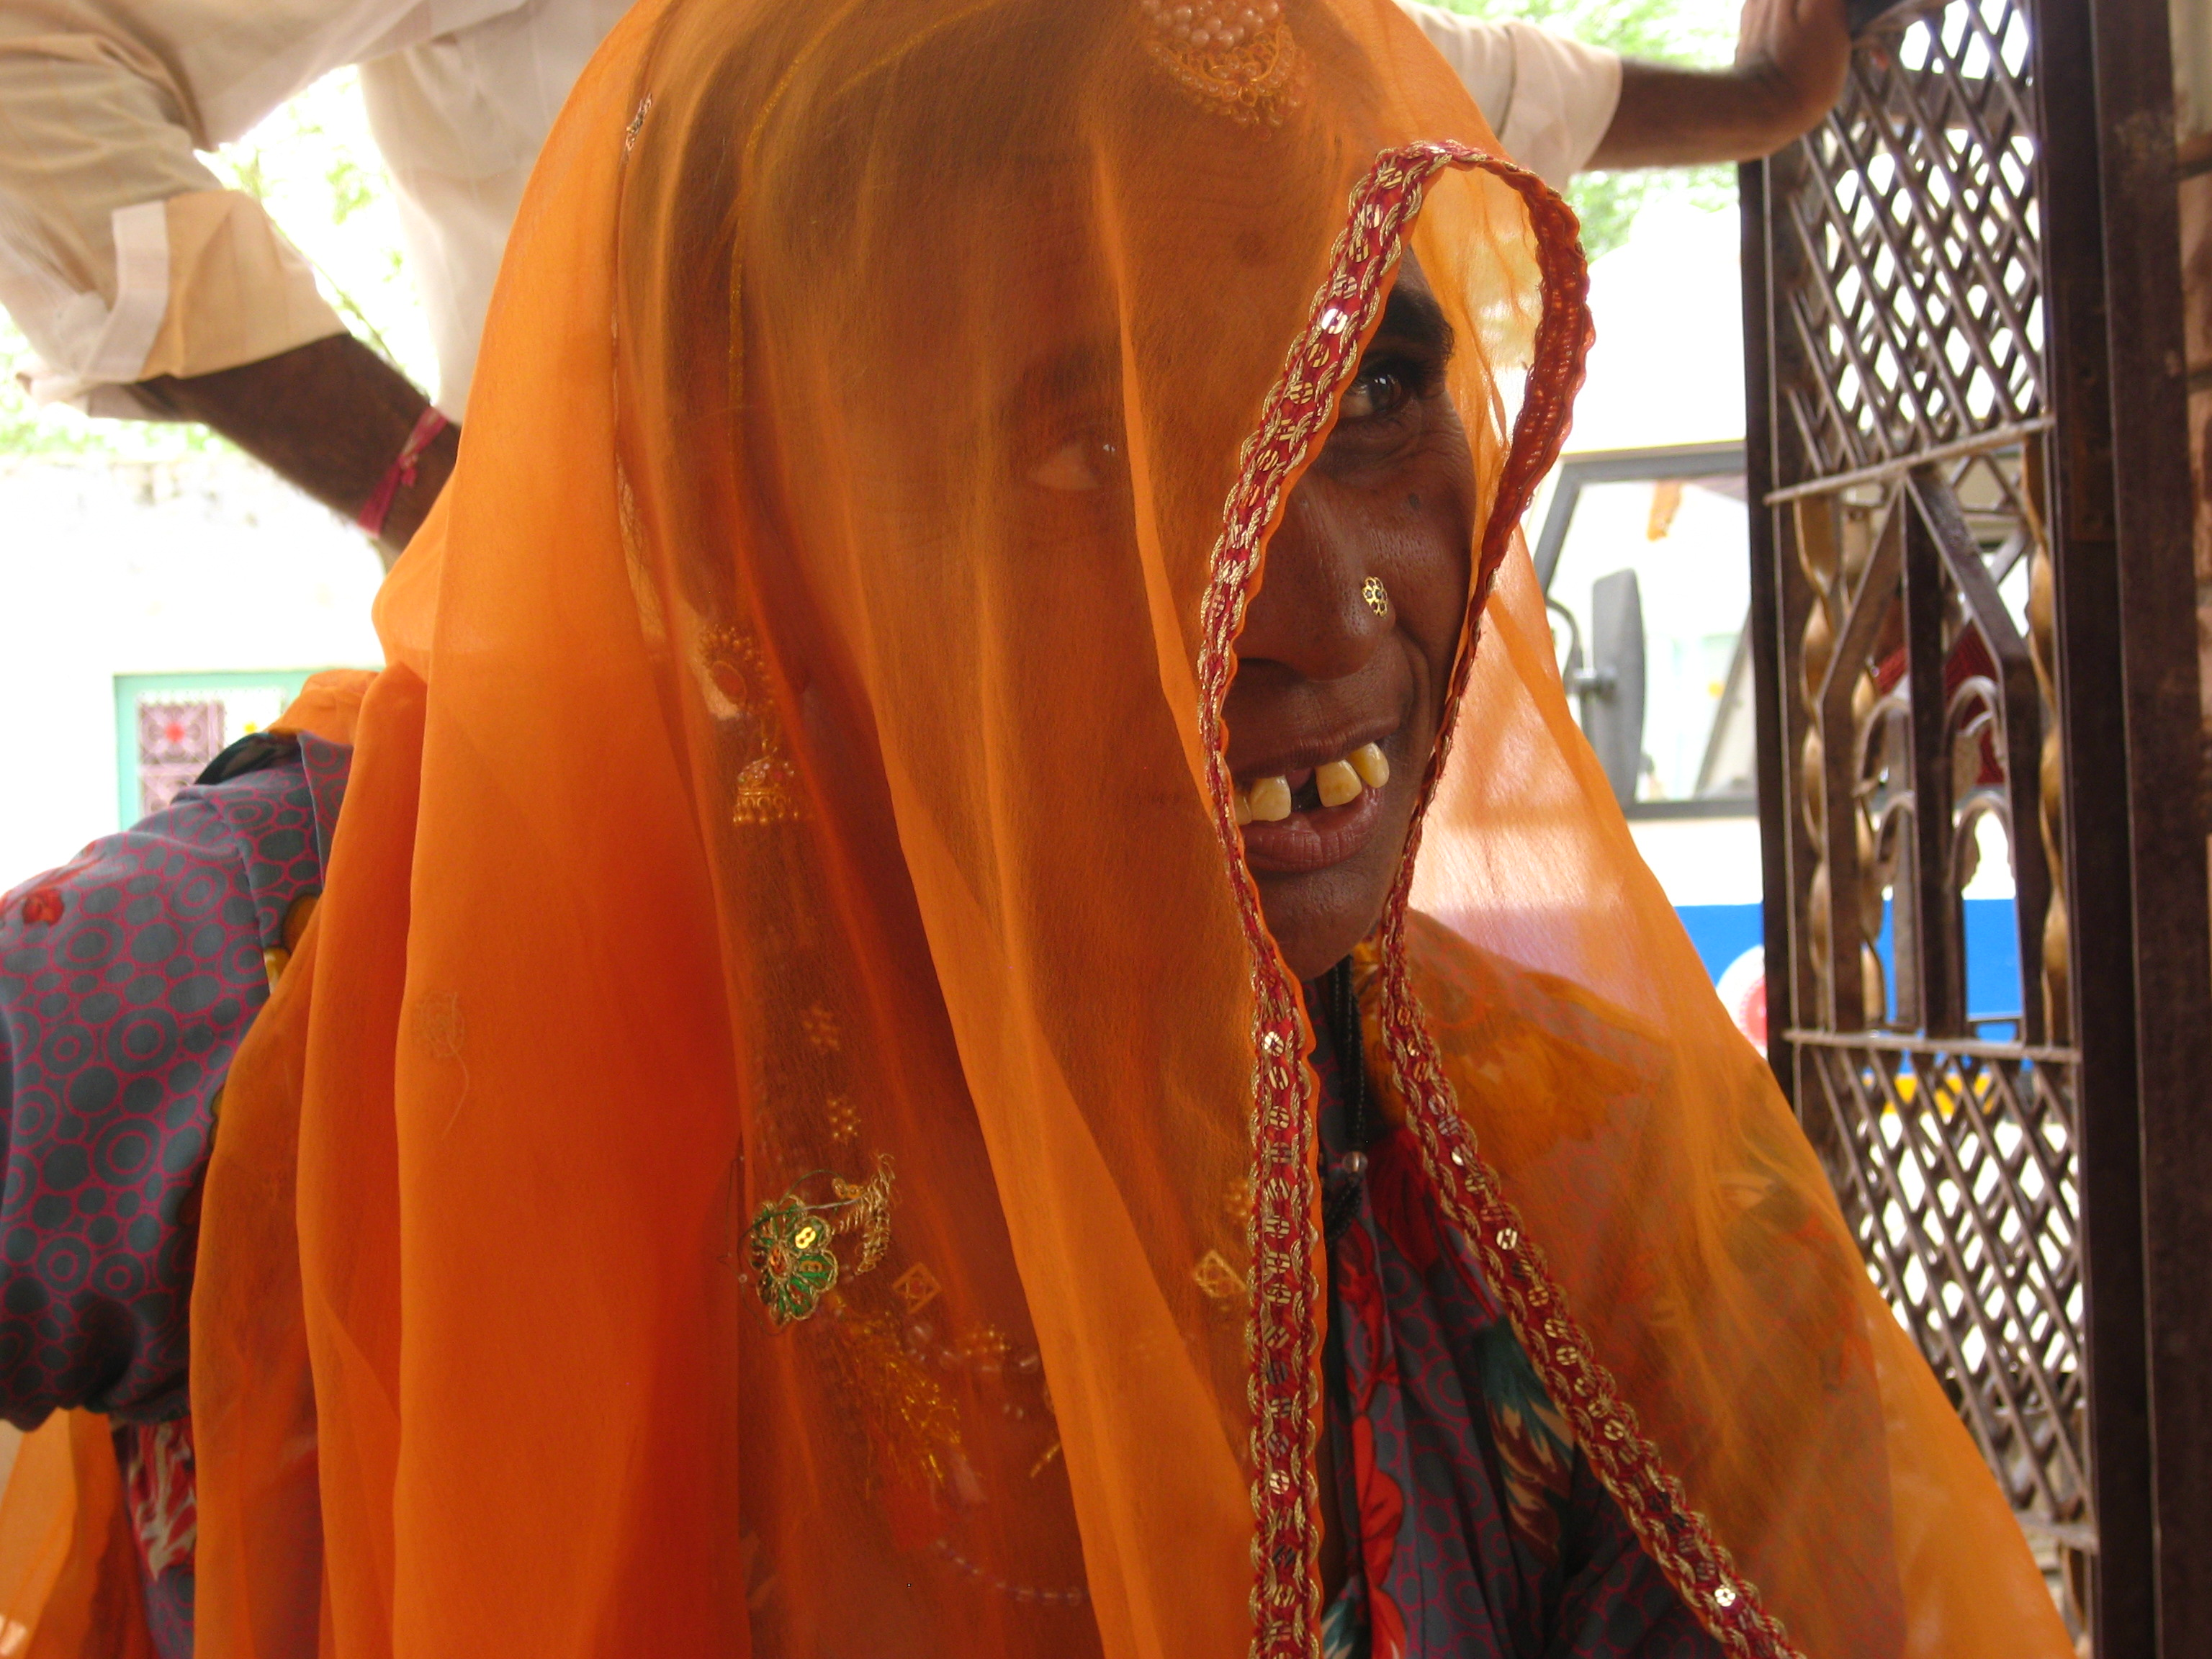 Indian woman with orange scarf over her head